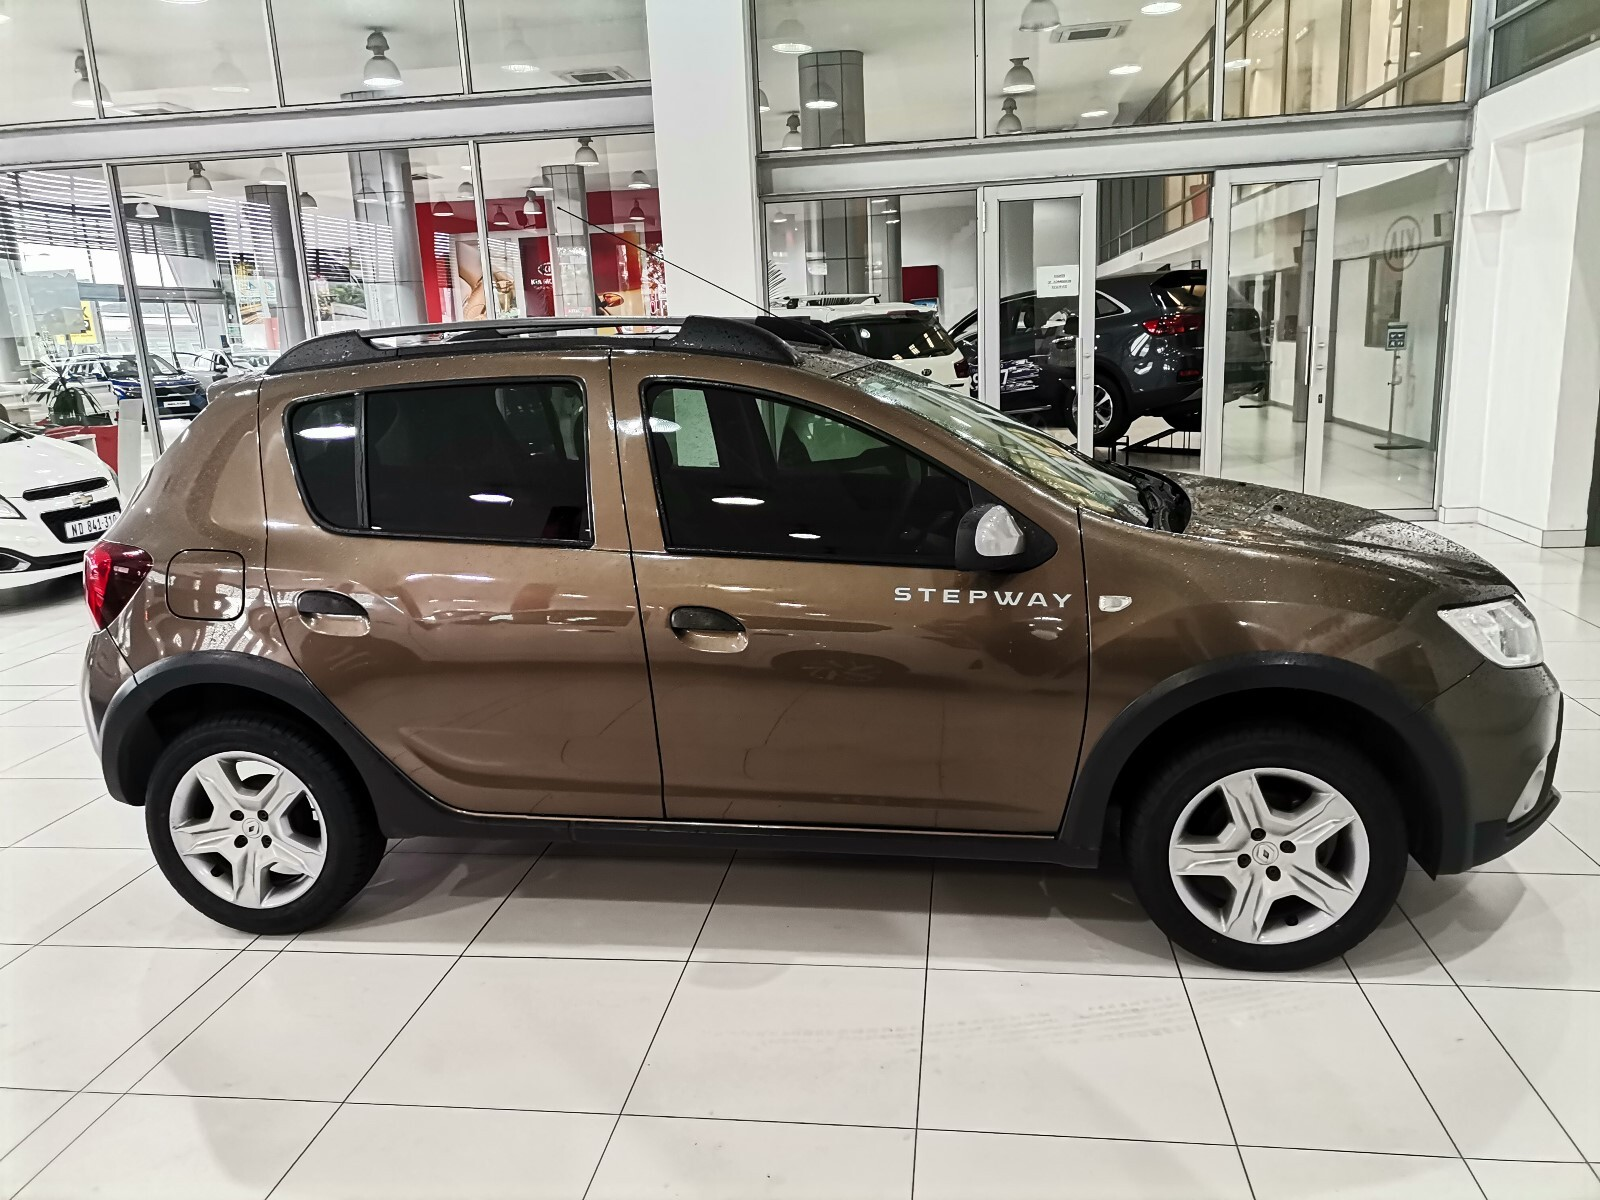 RENAULT 900T STEPWAY EXPRESSION Pinetown 2307425